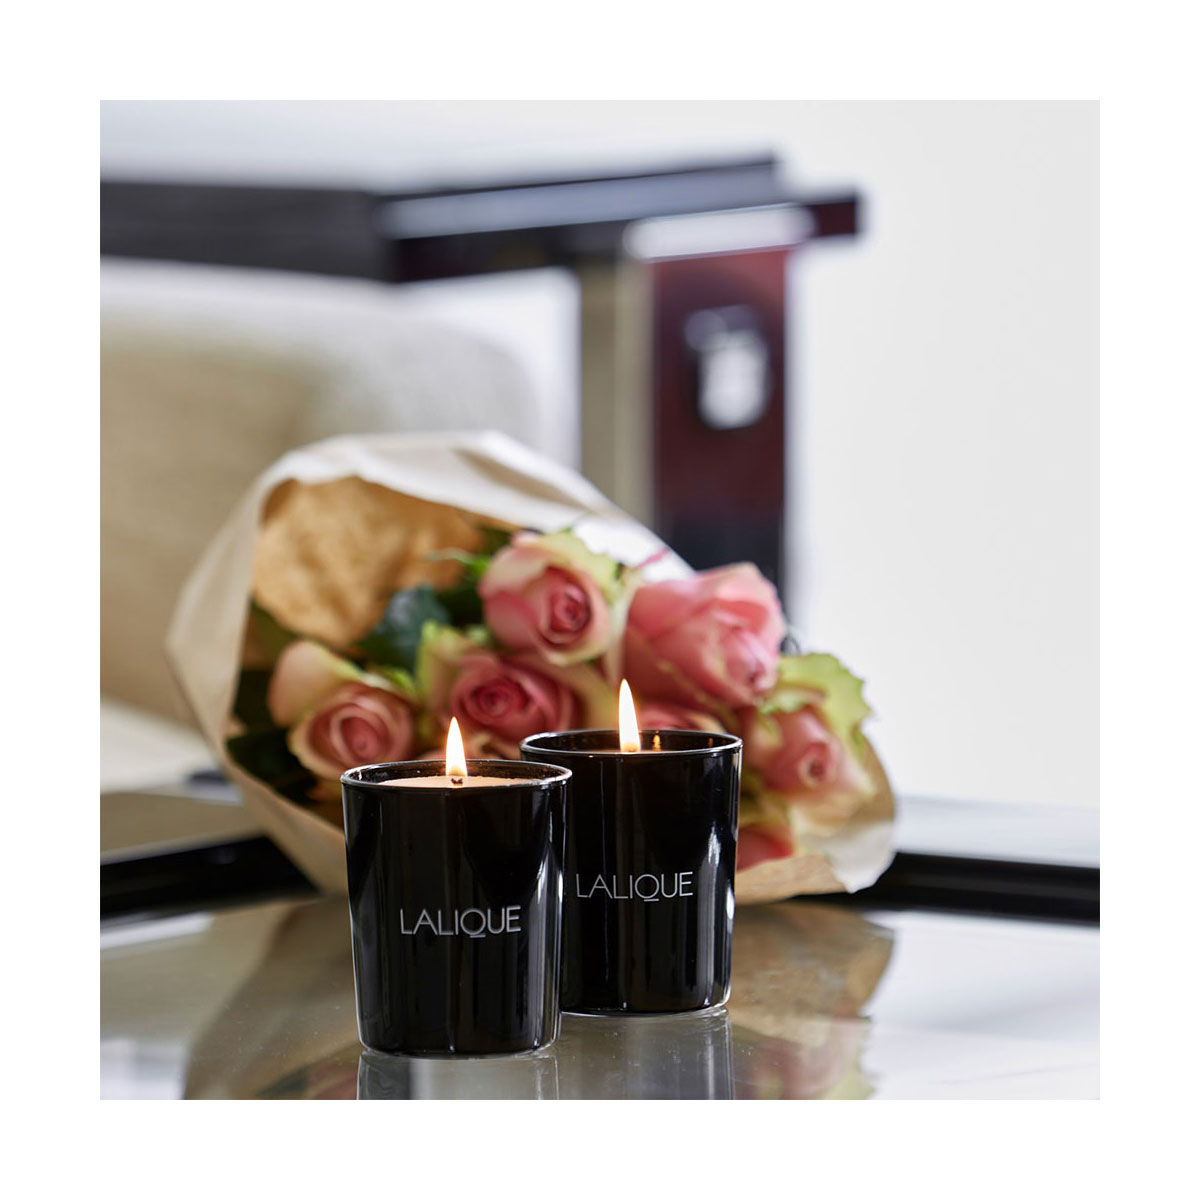 Lalique Mediterranean Colours Scented Candles, Gift Set of 3